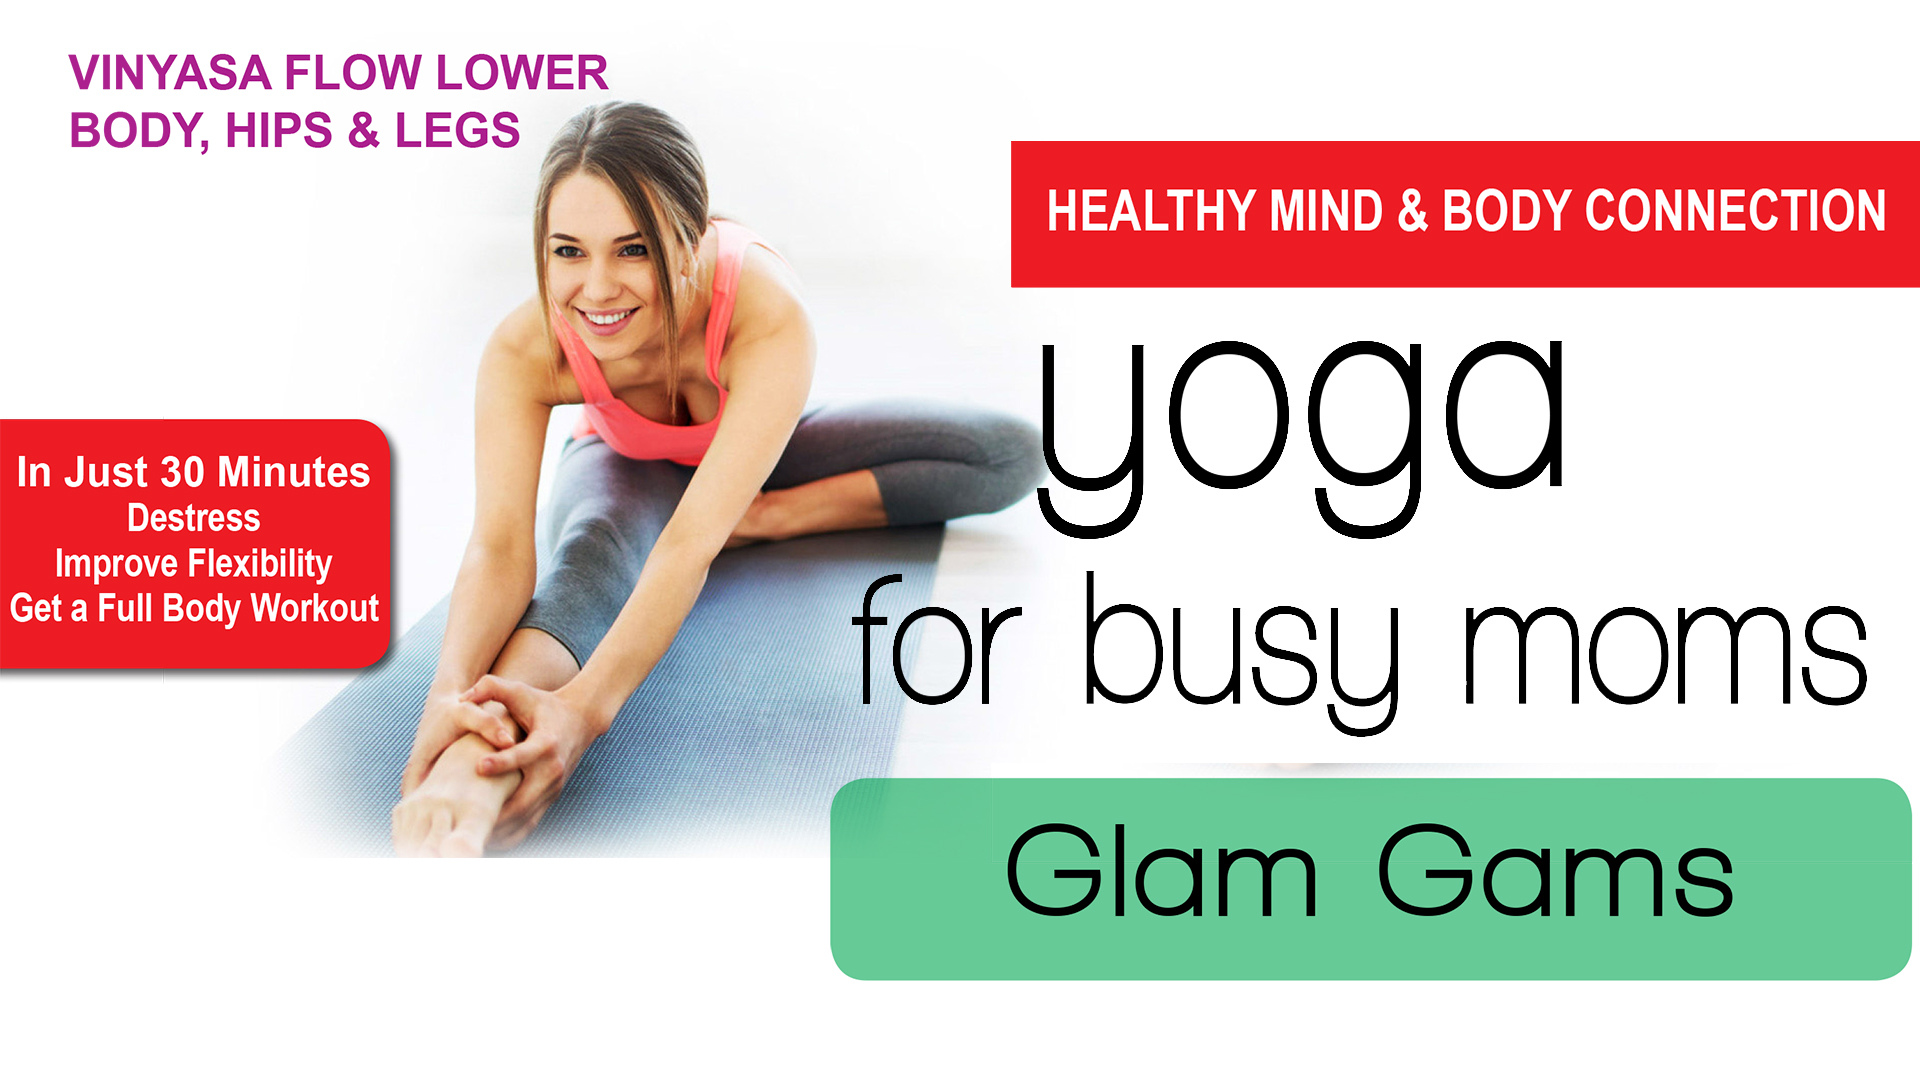 A7063 - Vinyasa Flow Lower Body, Hips & Legs - Glam Gams